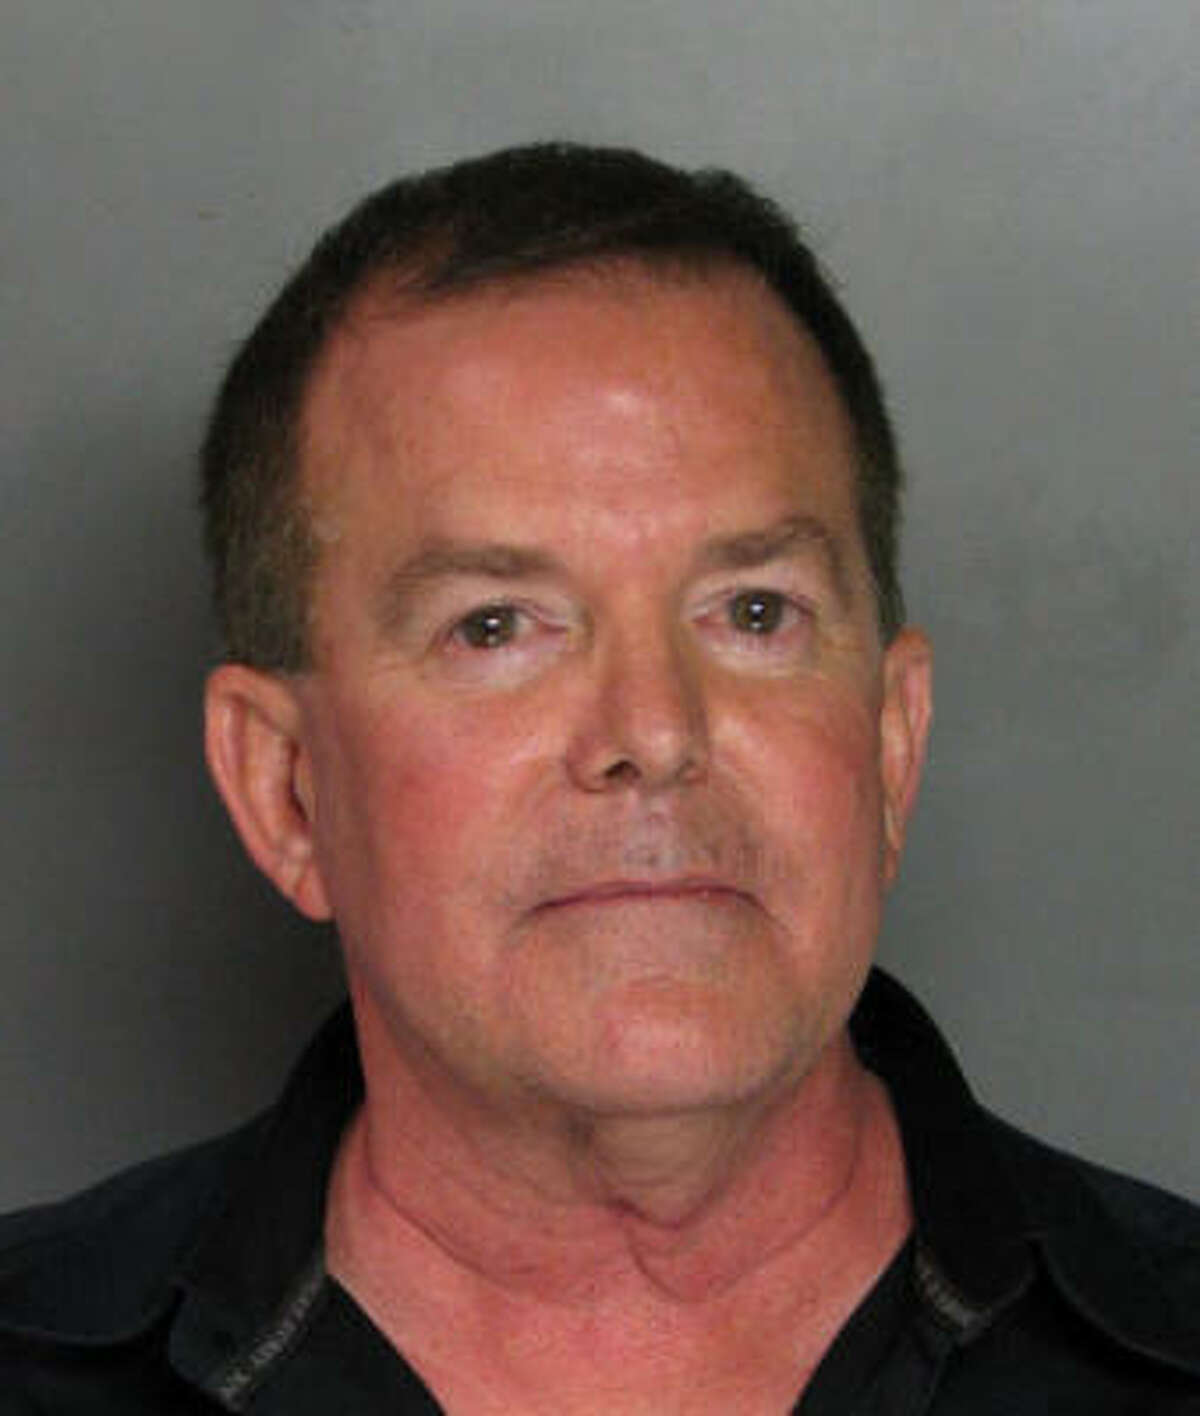 State Sen. Roy Ashburn, R-Bakersfield : The senator, whose voting record on gay rights was very poor, outed himself on an AM radio station. The trigger for his self-outing was a recent DUI arrest after a night at a gay club.